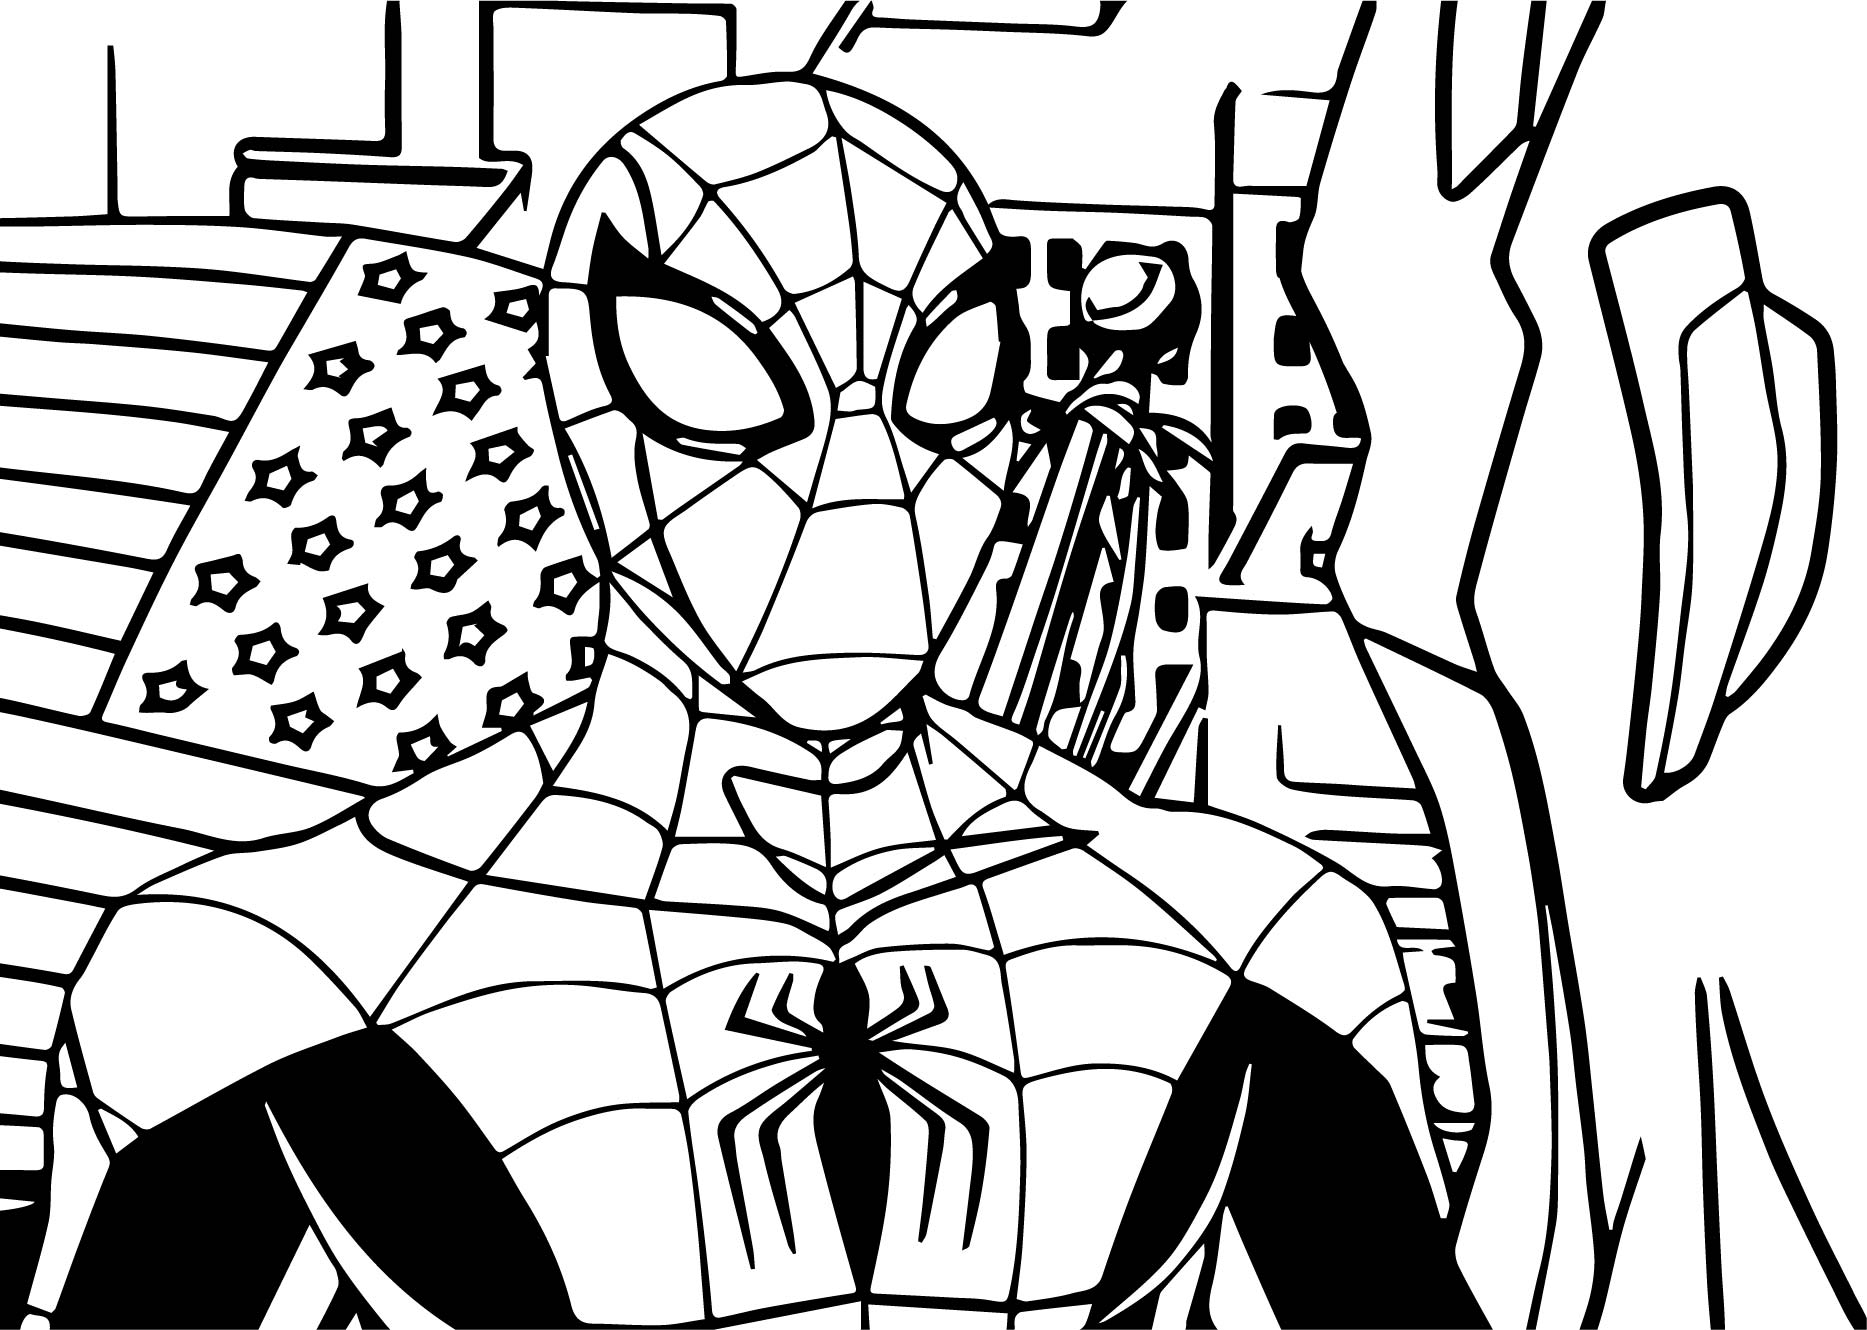 Avengers spiderman coloring page for Spiderman coloring book pages